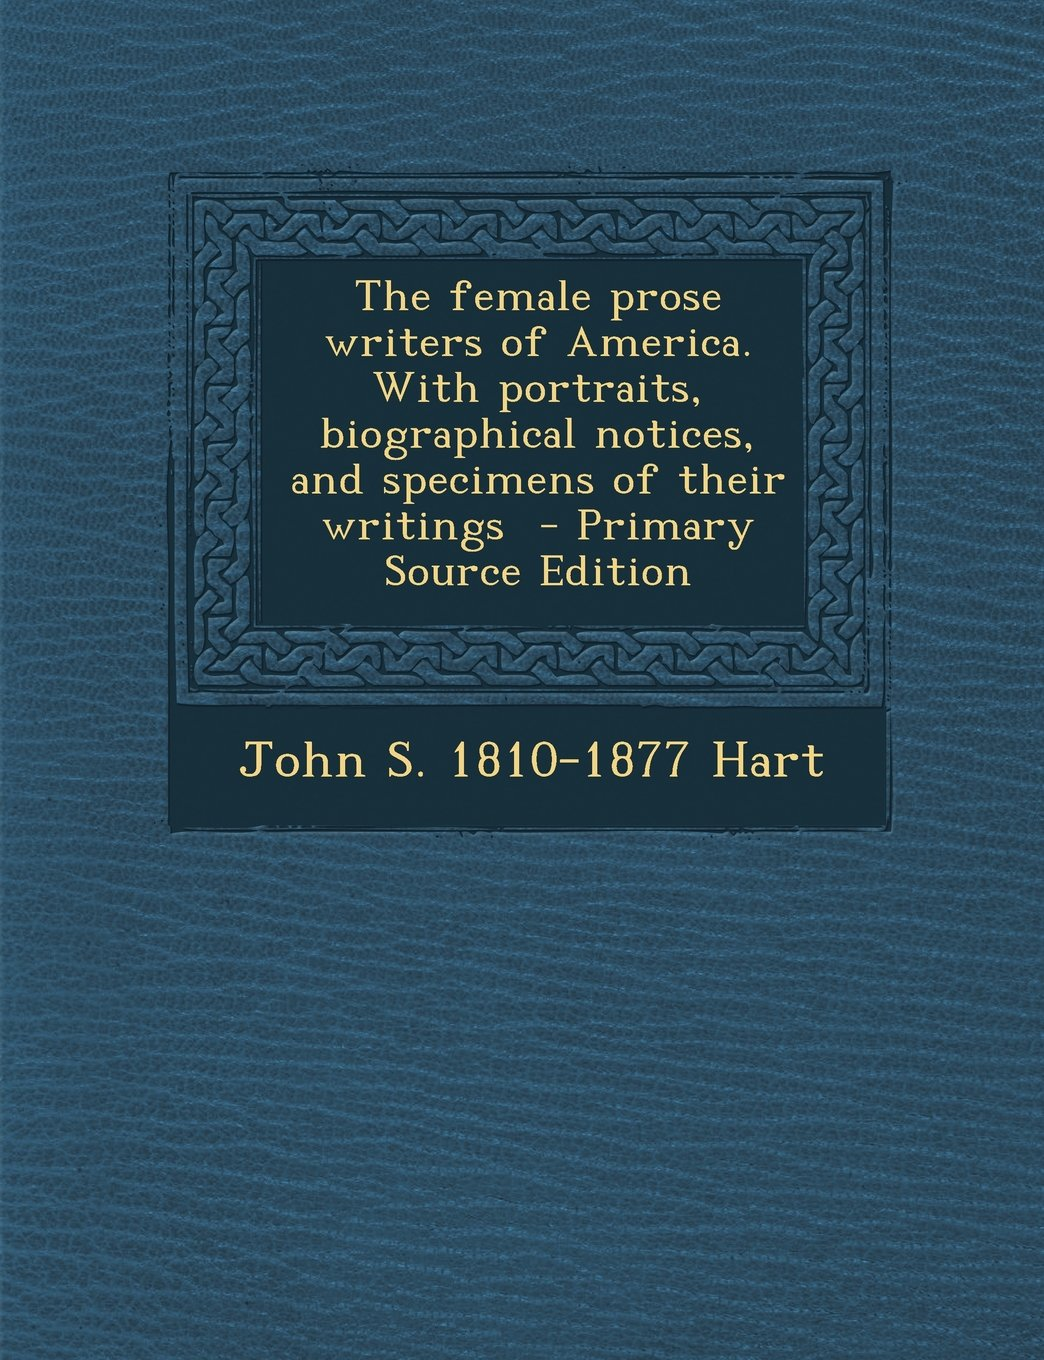 Read Online The Female Prose Writers of America. with Portraits, Biographical Notices, and Specimens of Their Writings - Primary Source Edition ebook